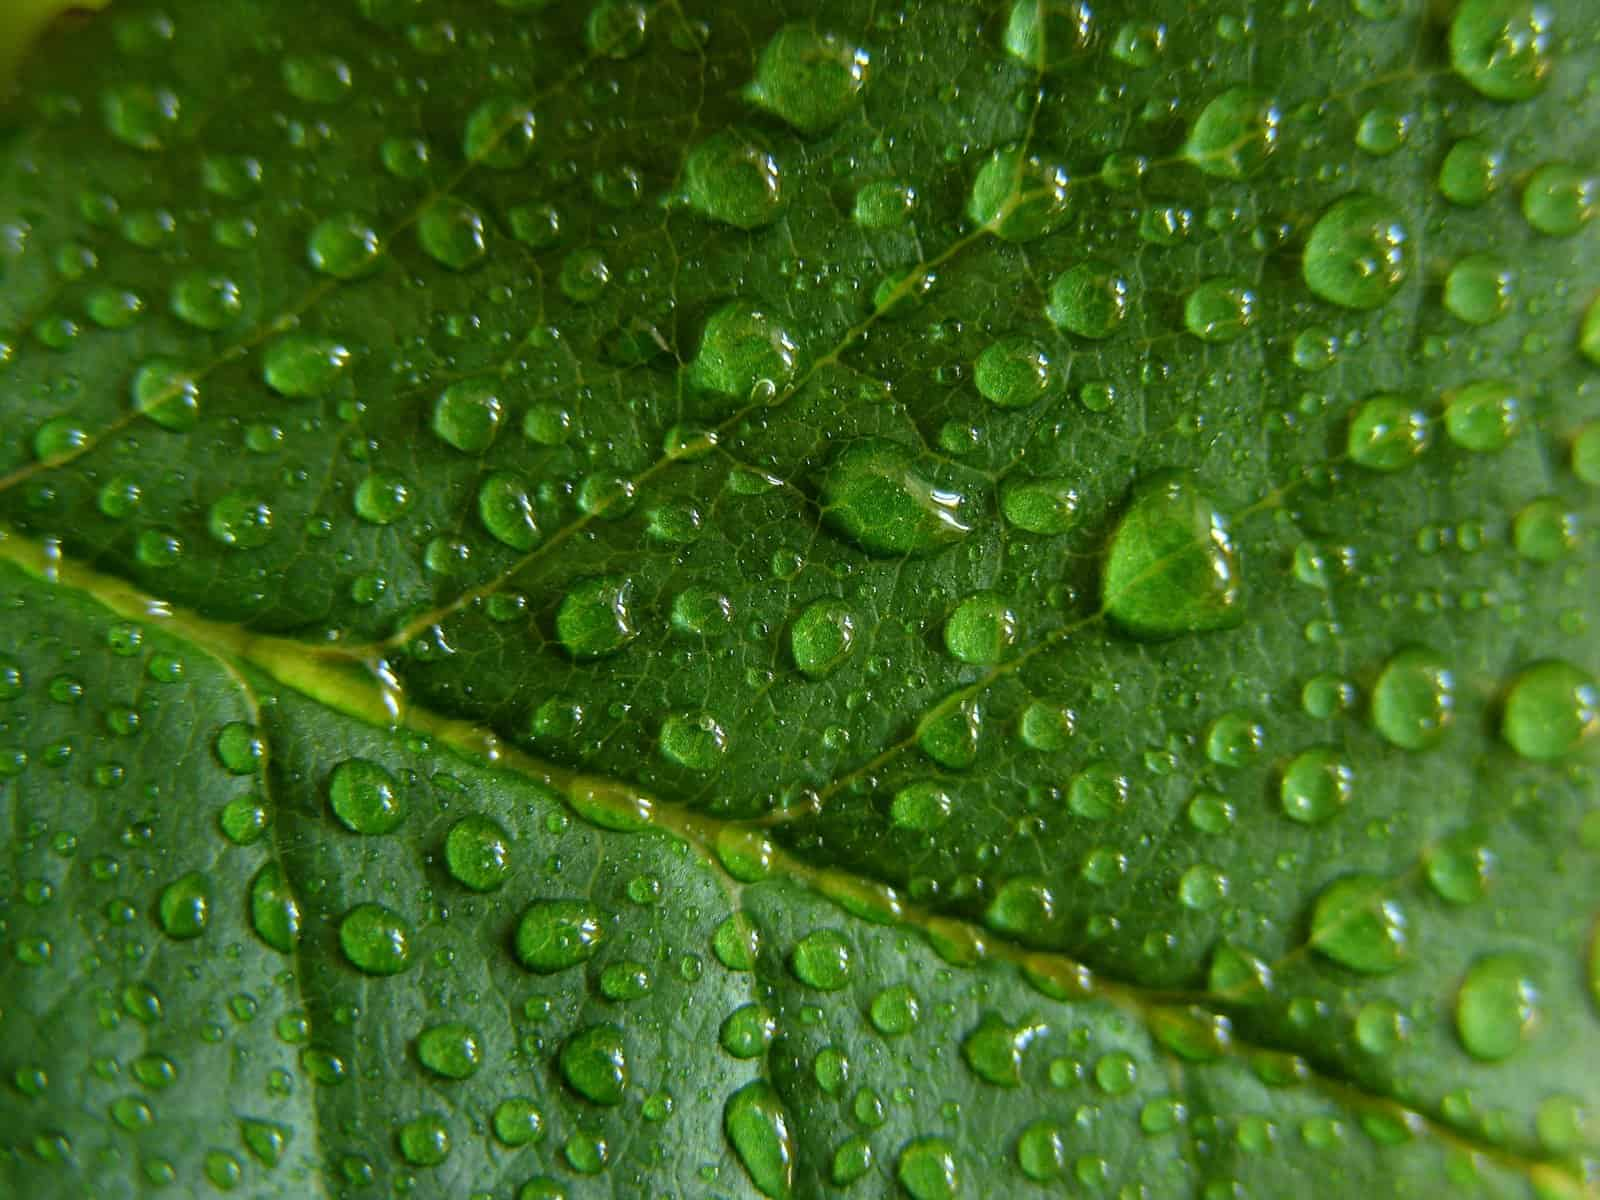 Controlling Humidity in Your Indoor Marijuana Grow. Water droplets on a leaf.